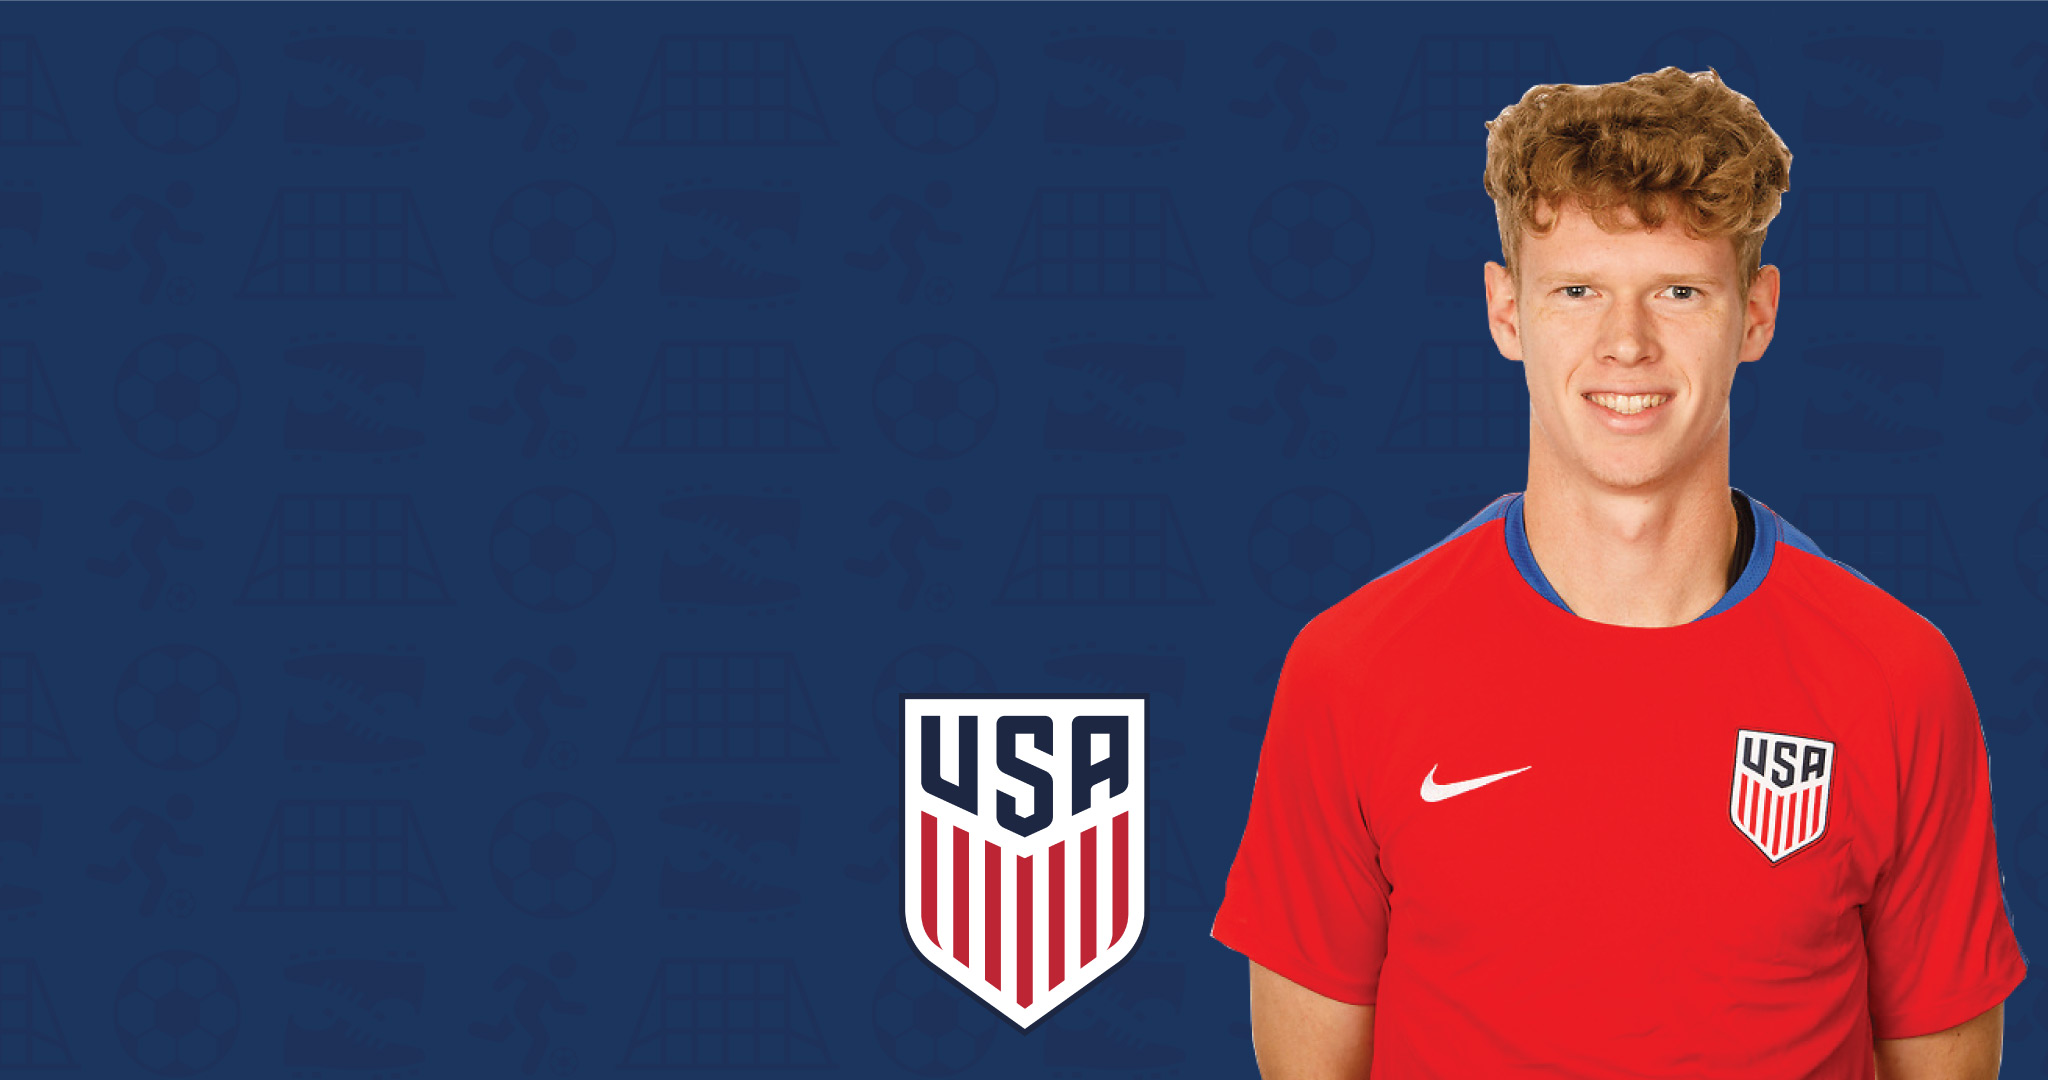 Christian Cappis joins U.S. Men's National Team